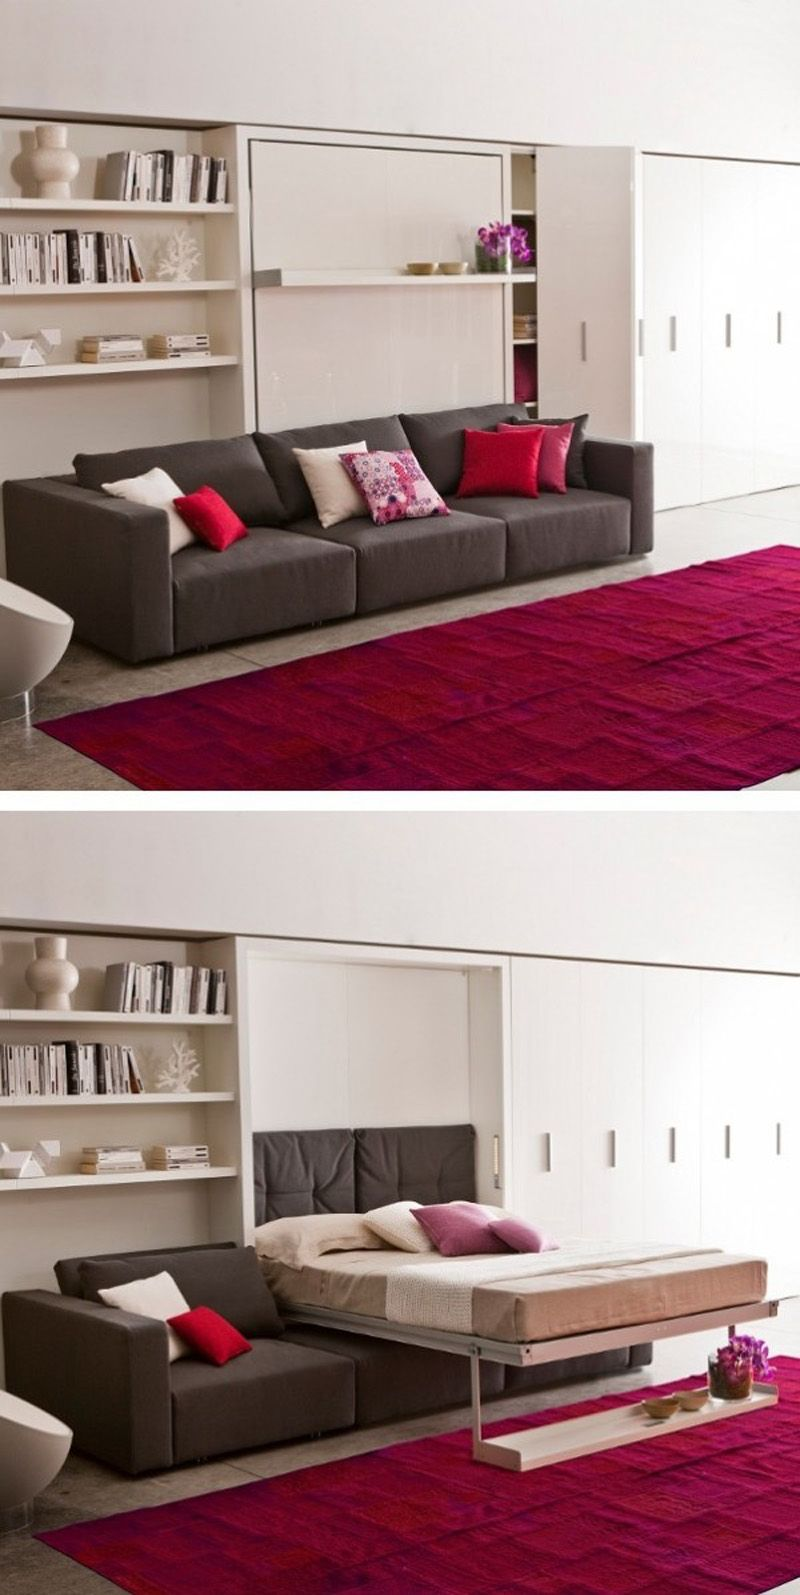 20+ Ideas Of Space Saving Beds For Small Rooms Beds for